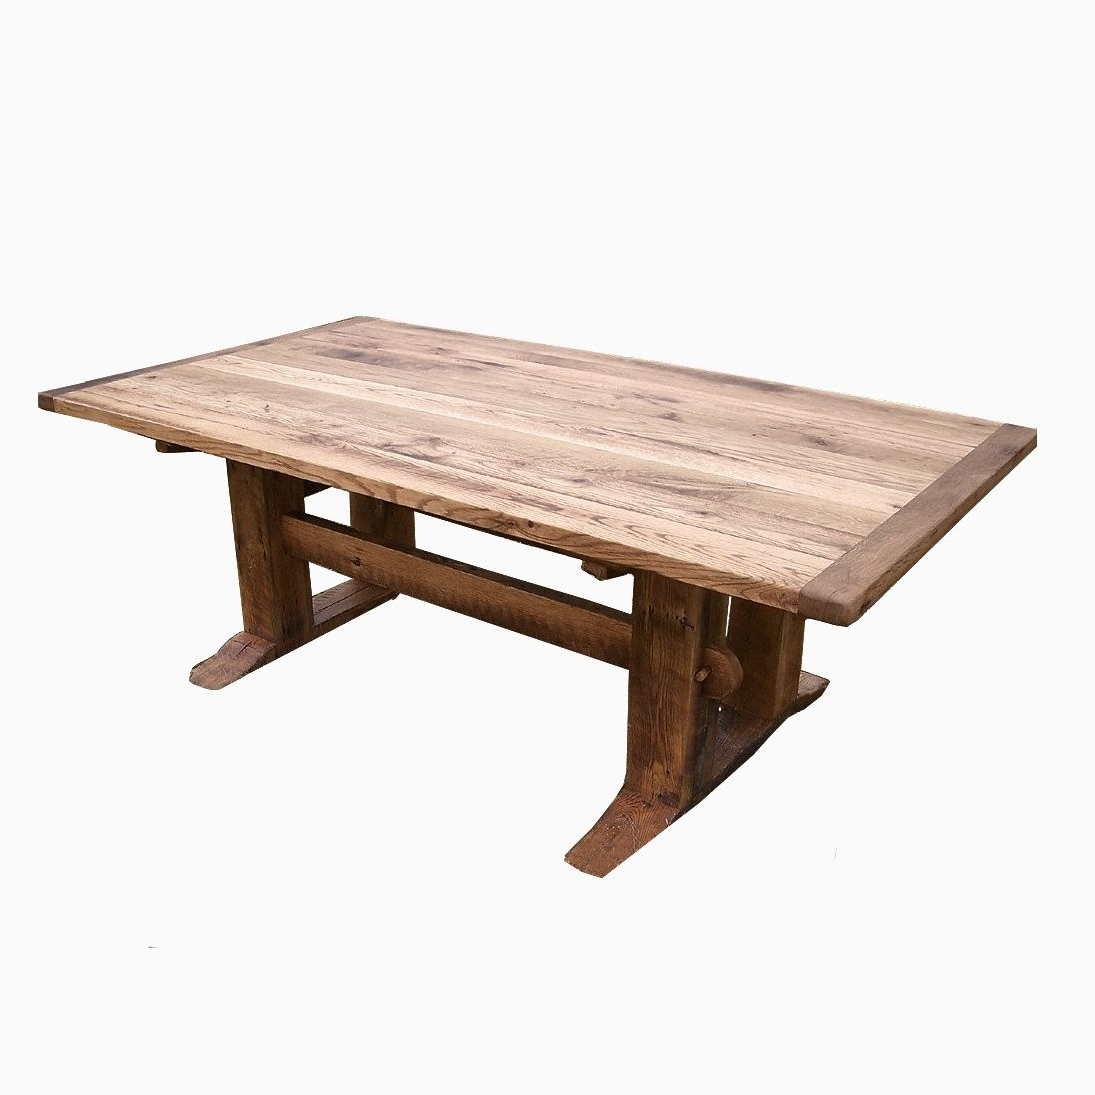 Buy A Hand Crafted Antique Oak Mission Style Trestle Table, Made To In Favorite Craftsman Rectangle Extension Dining Tables (View 12 of 25)